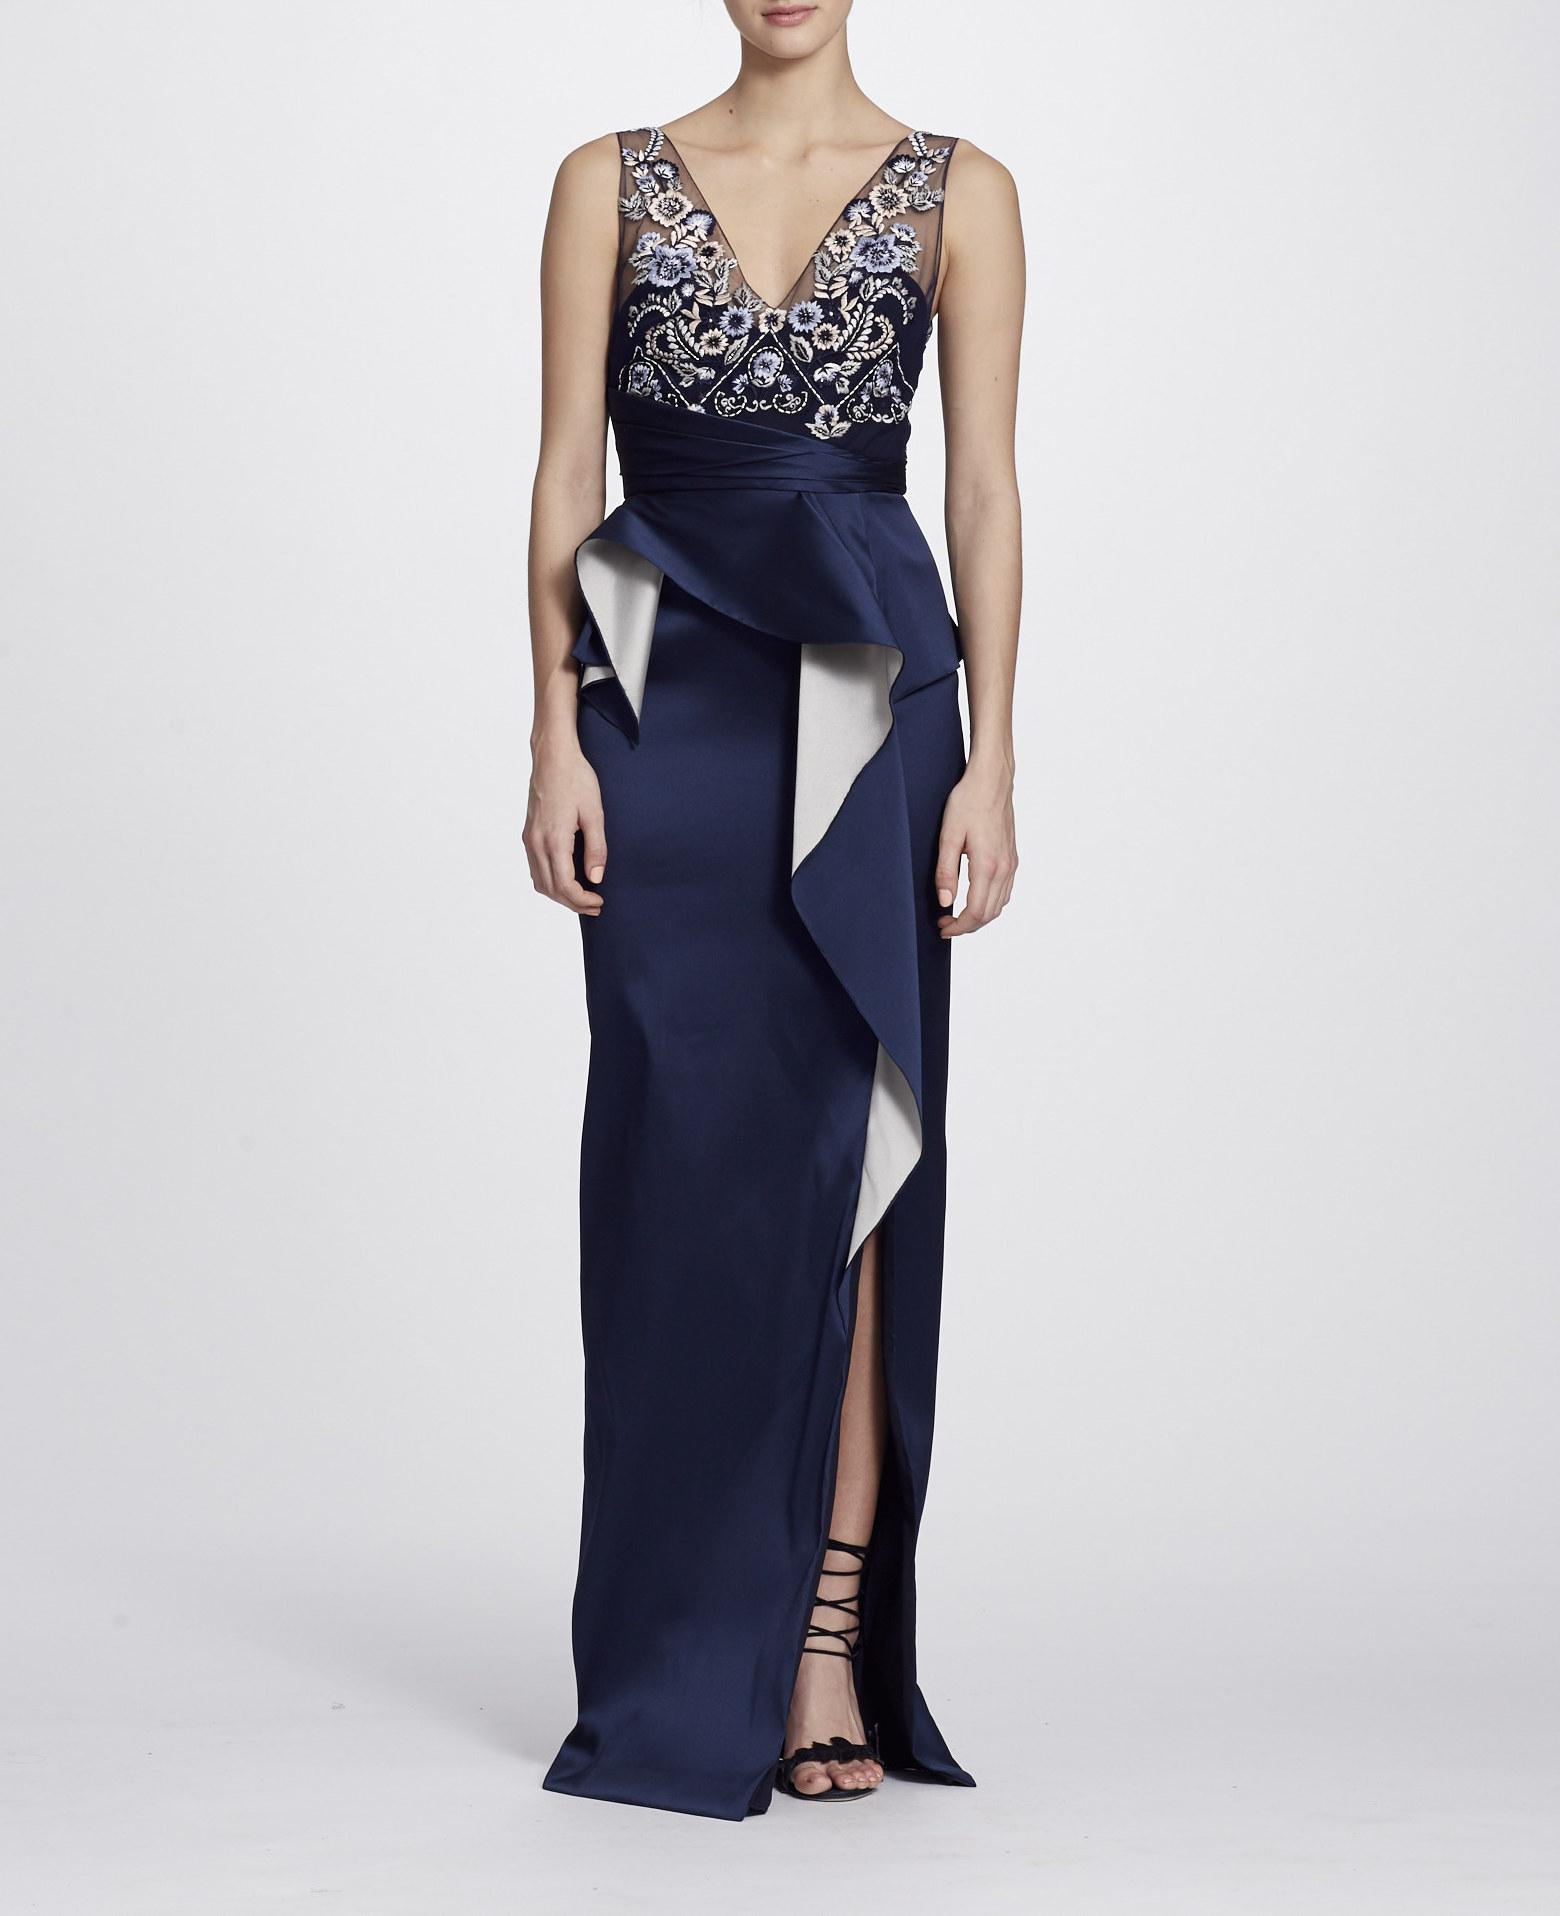 4bda95c5e64a8 Marchesa Notte Fall/Winter 2018 Sleeveless Two Tone Stretch Mikado Column  Gown In Navy Blue